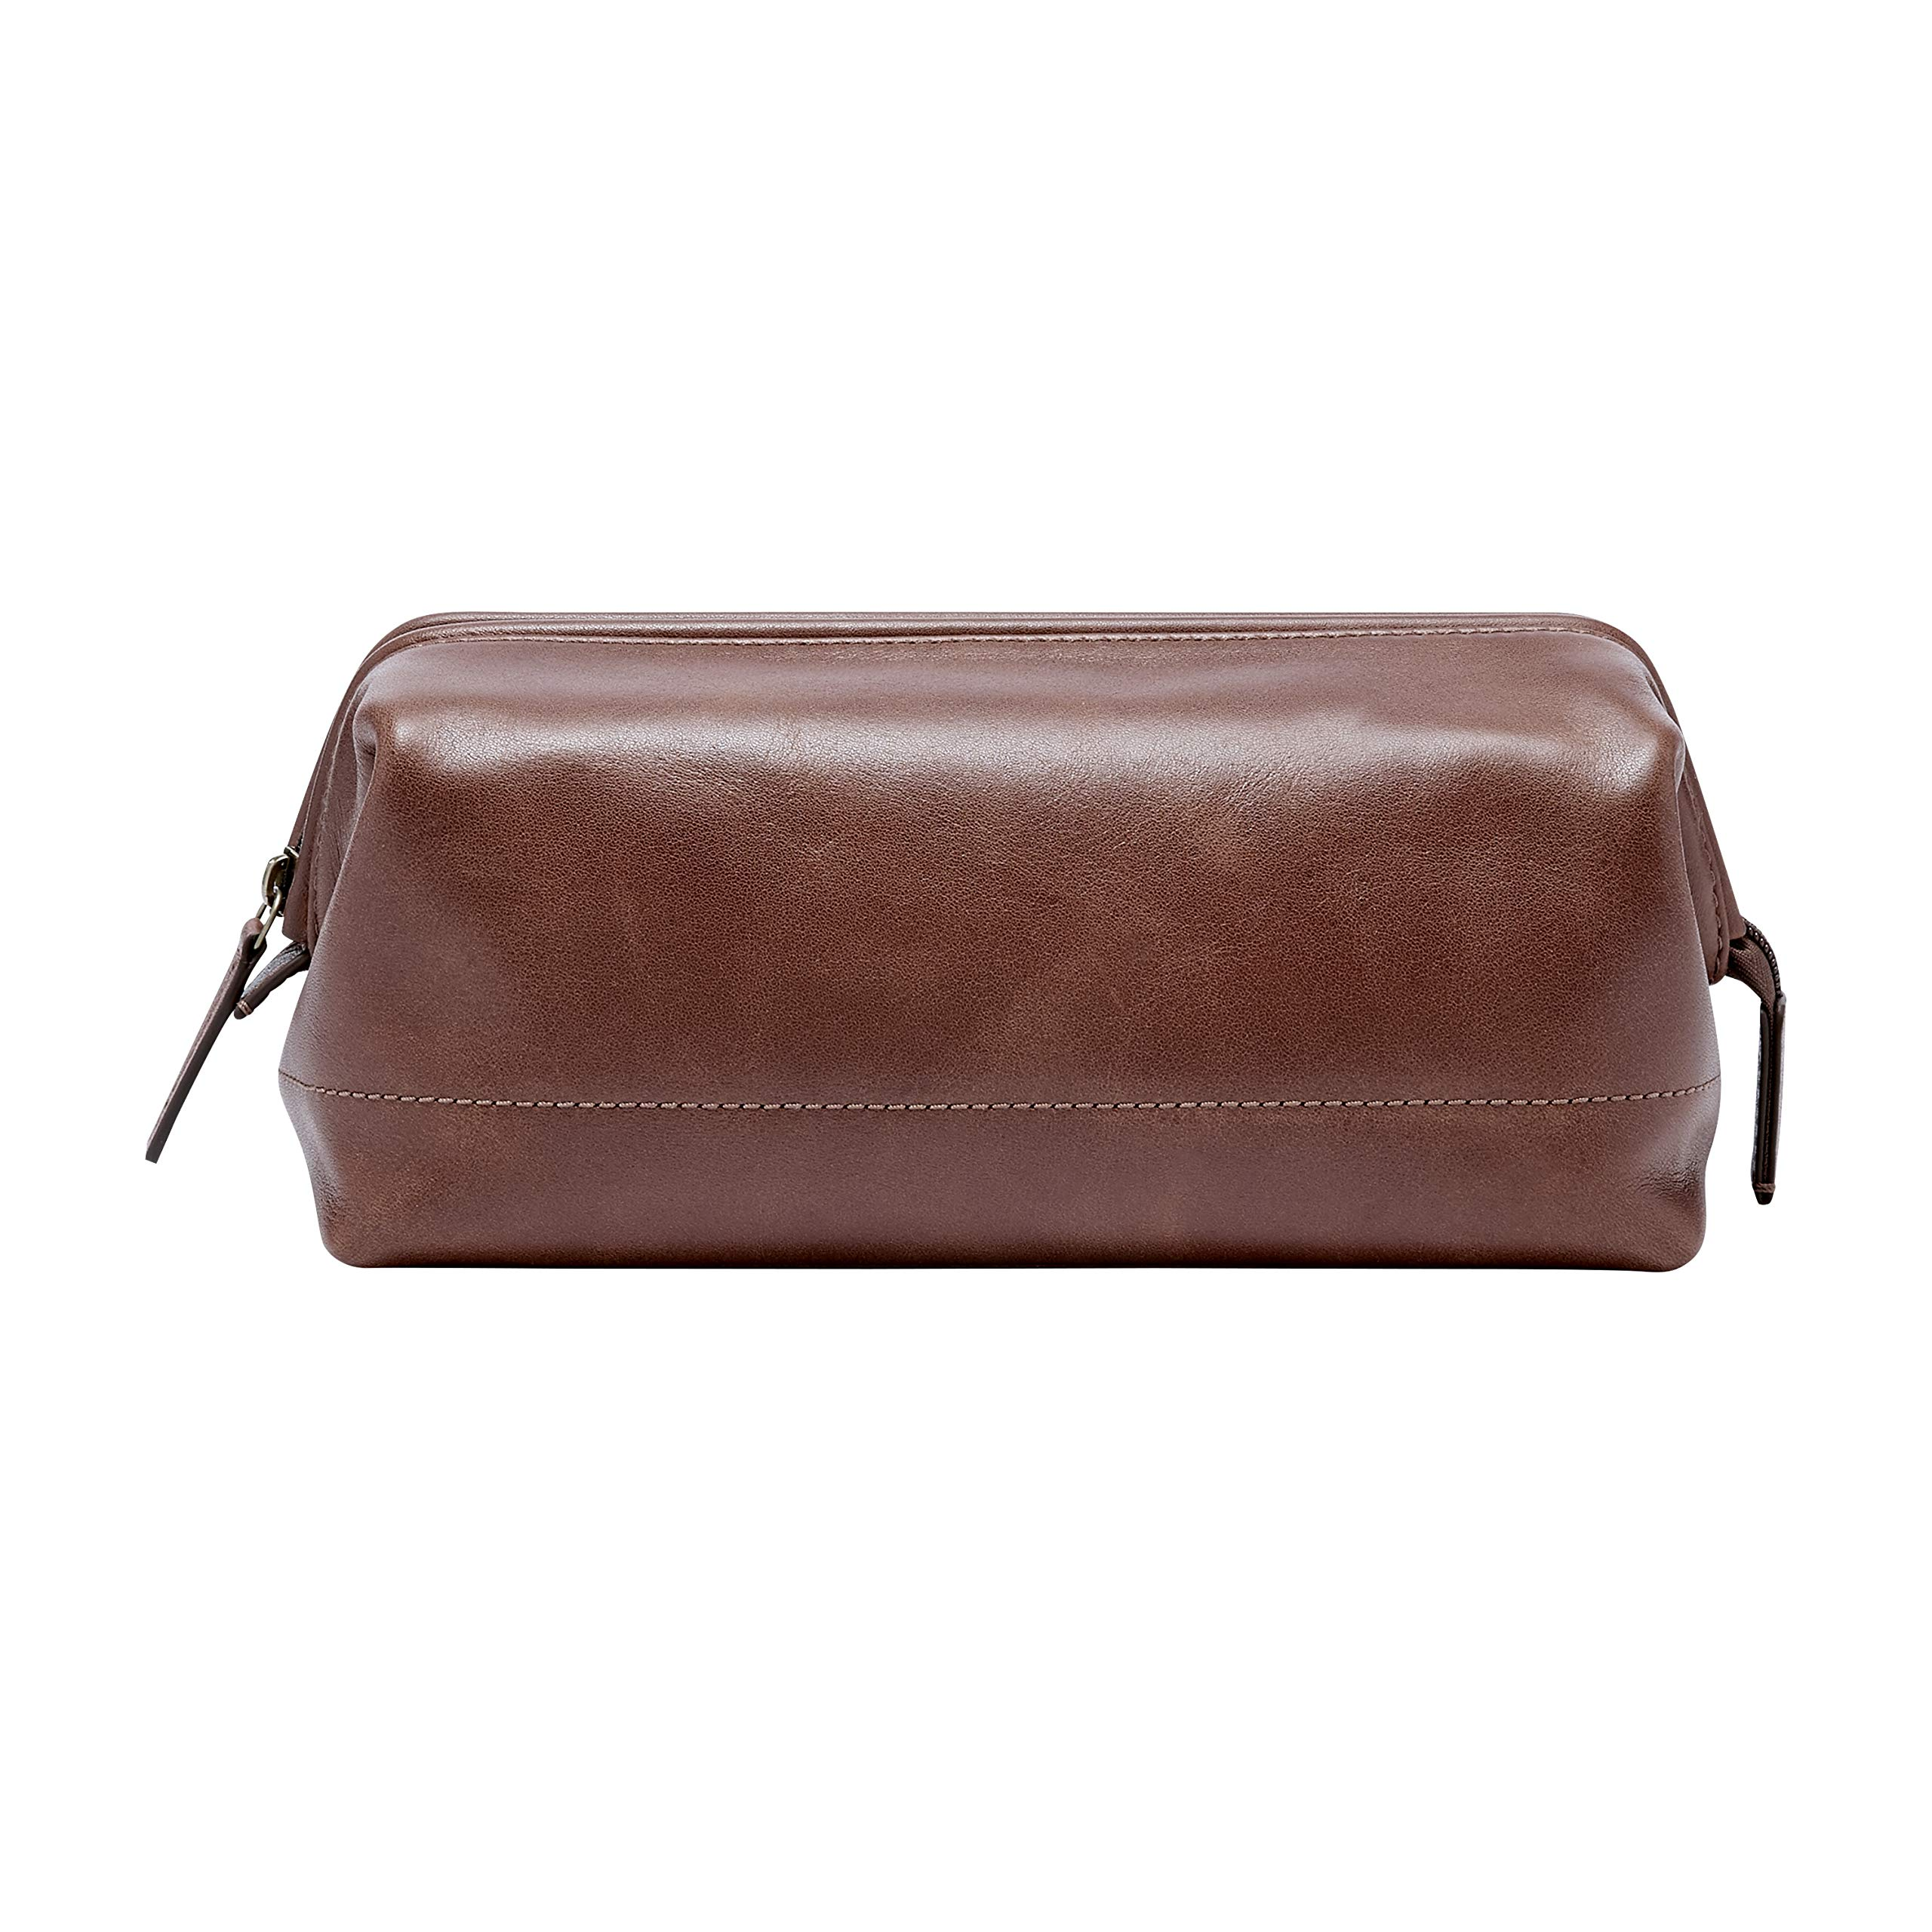 Fossil Men's Framed Shave Kit Cognac Accessory, -cognac, 10.3''L x 6''W x 5.5''H by Fossil